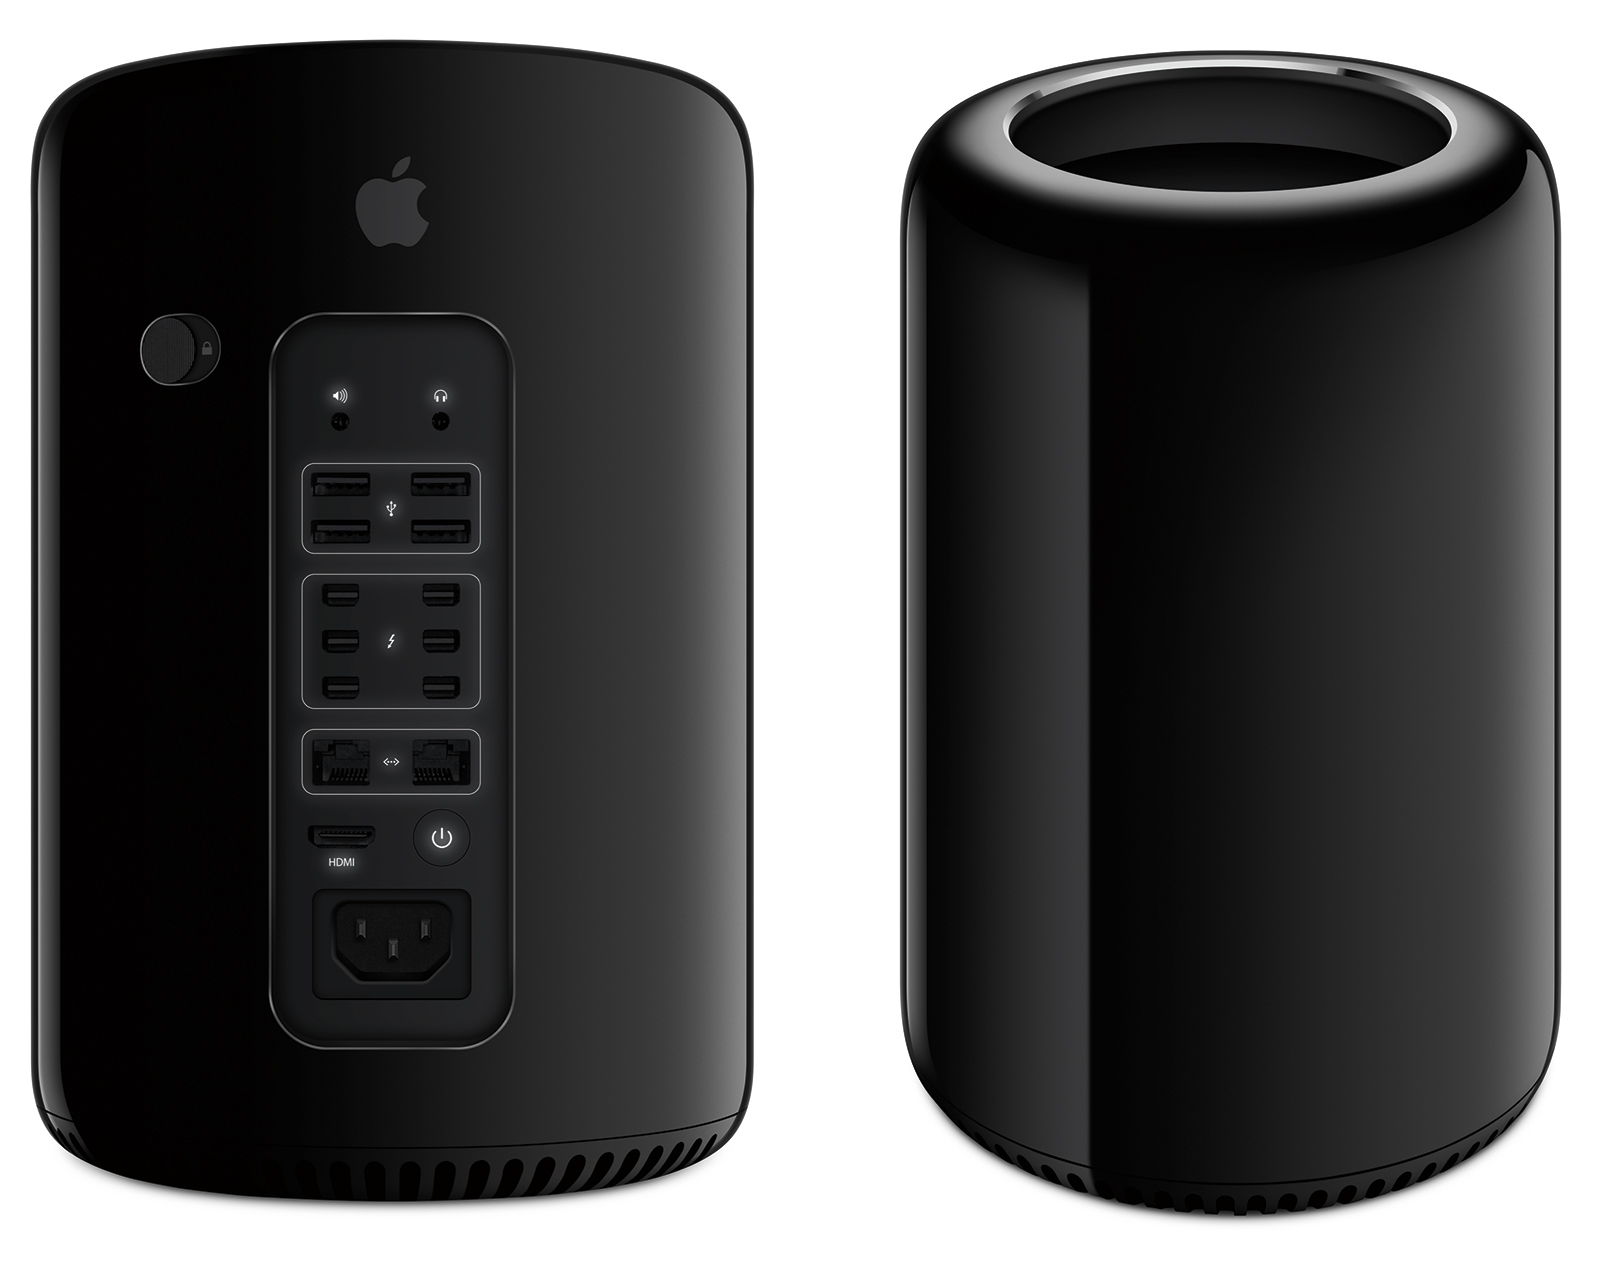 Mac Pro Six Core 3.5GHz (Late 2013)